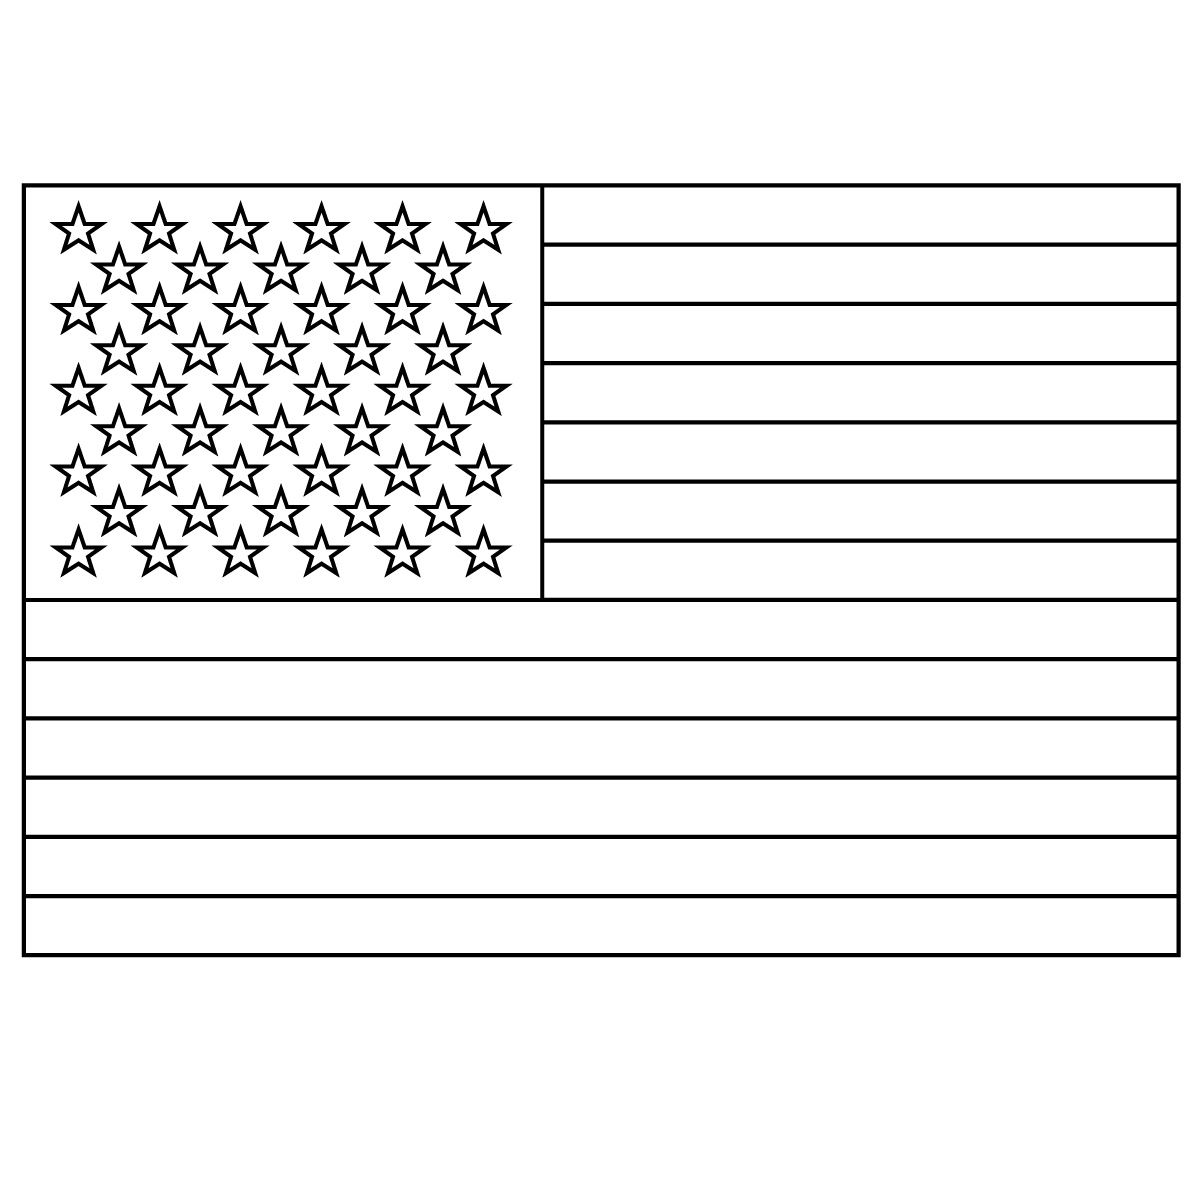 americanflagbnw.jpg (1200×1200) | Patterns I love and things | Pinterest